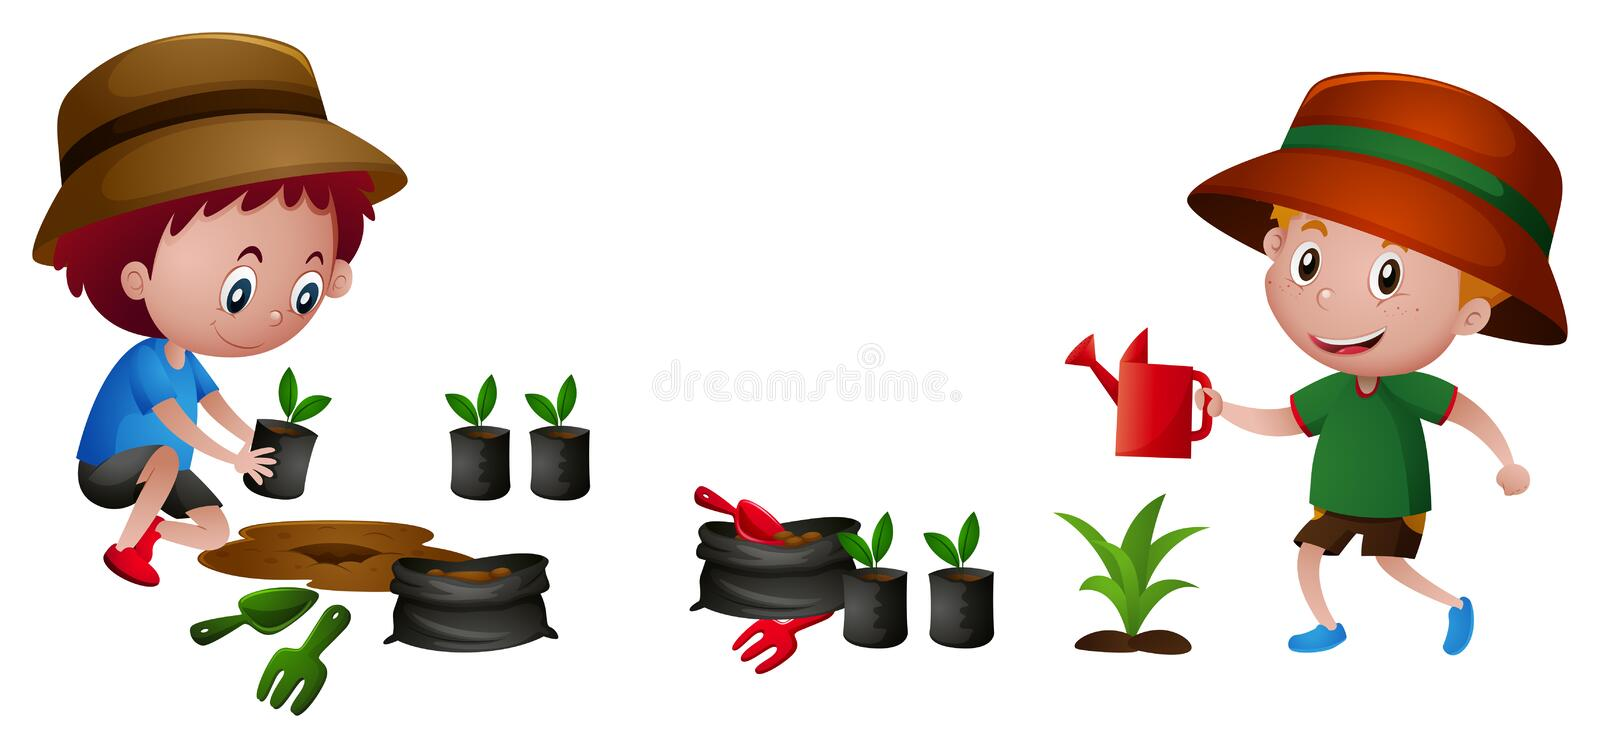 two boys planting tree stock vector illustration of clipart rh dreamstime com tree planting clipart tree planting clipart